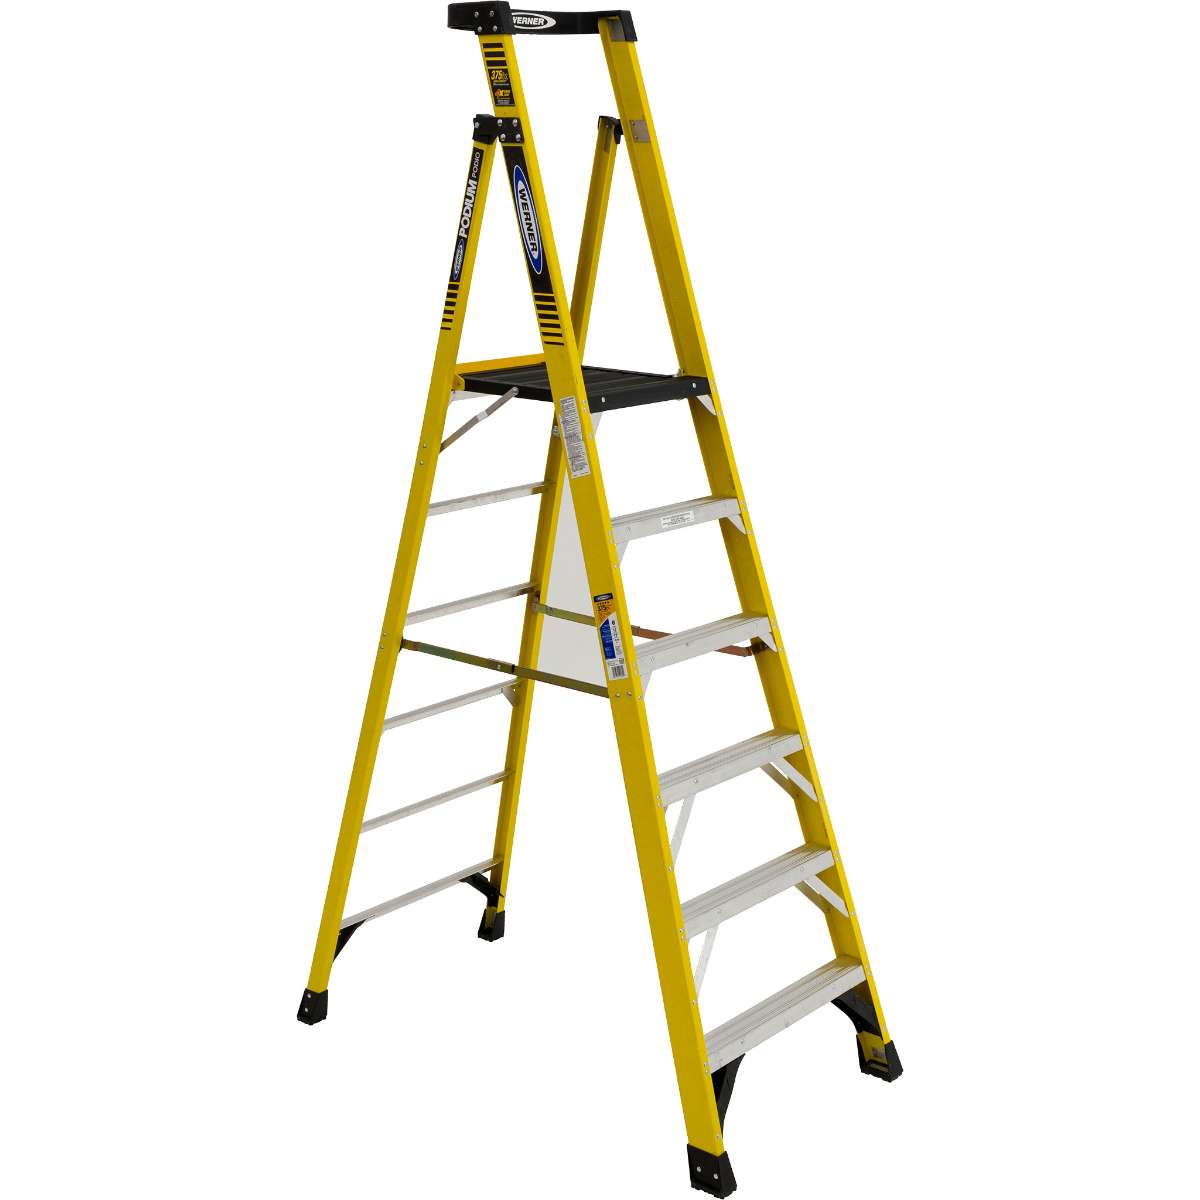 Podium Ladder - 375 lb. Capacity (PD7300 Series)